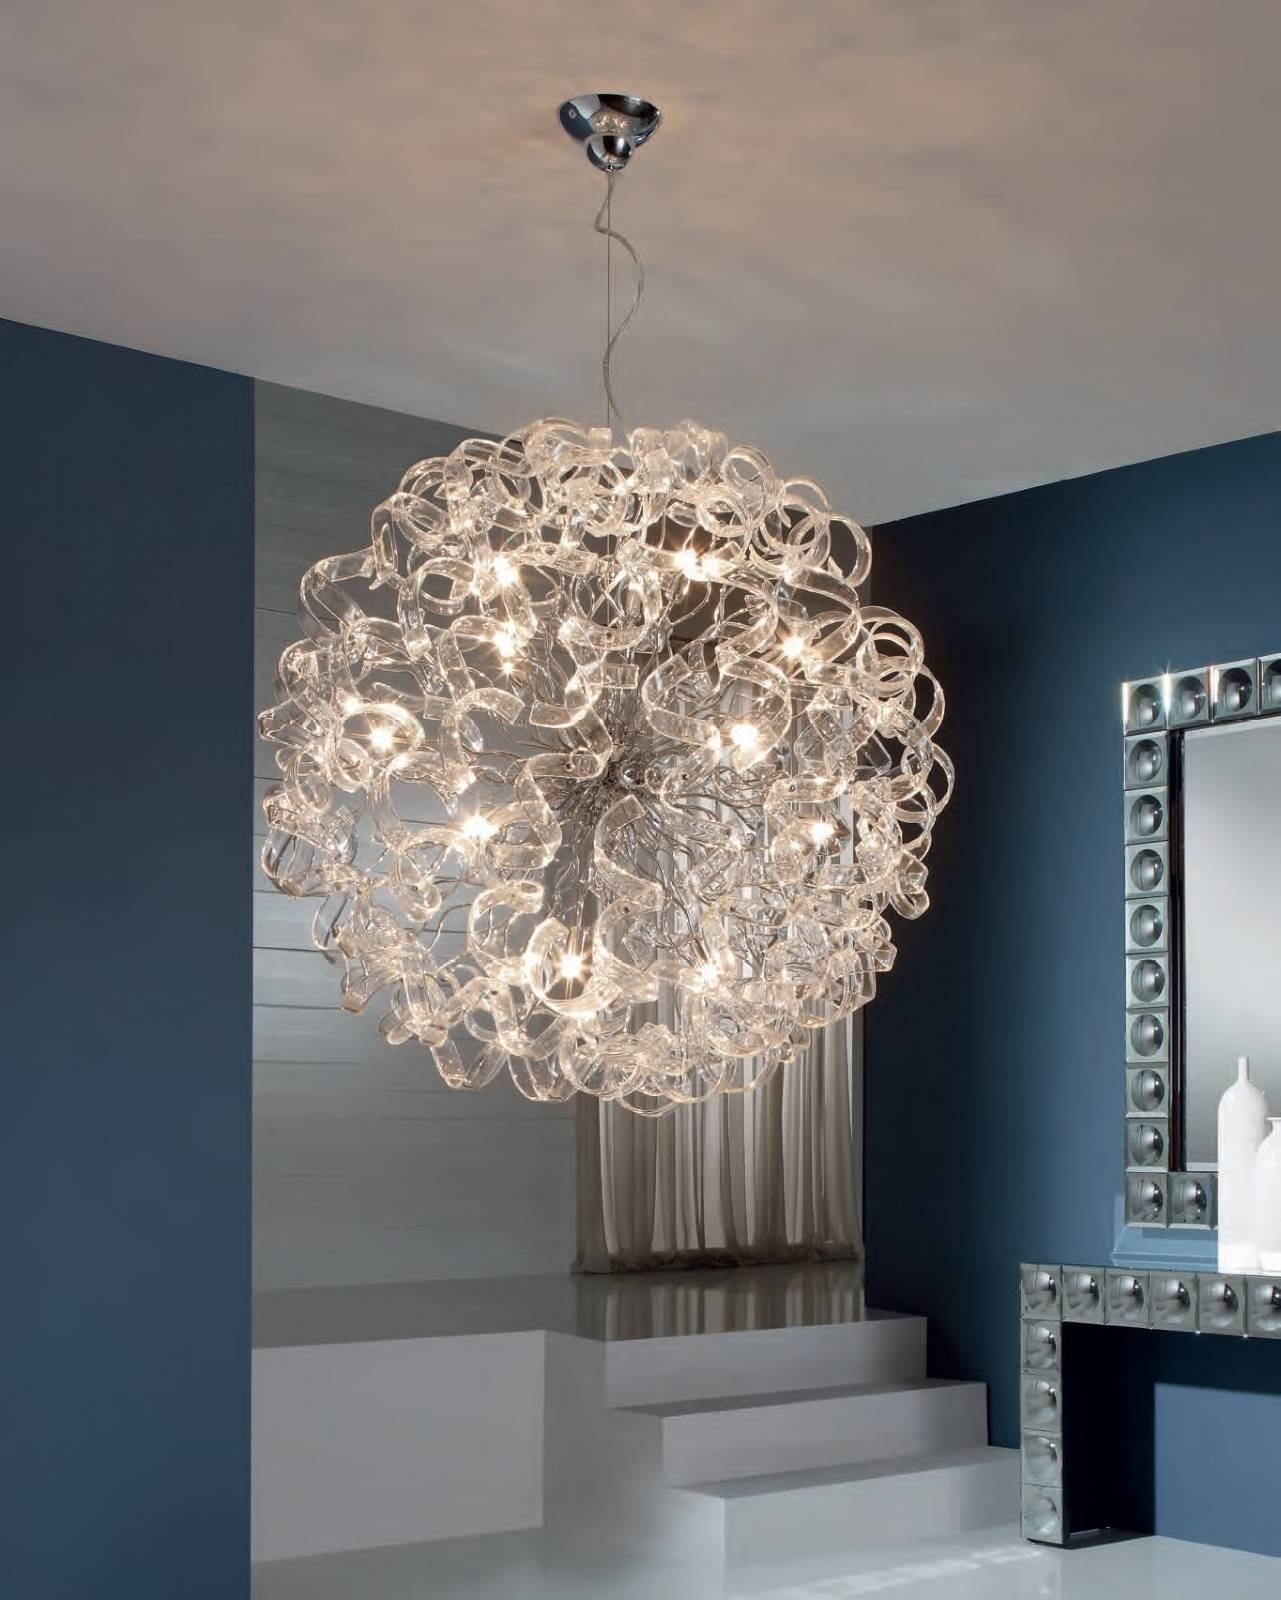 Ball Pendant Light With Curly Ribbons Of Glass - Medium Or Large intended  for Large Glass